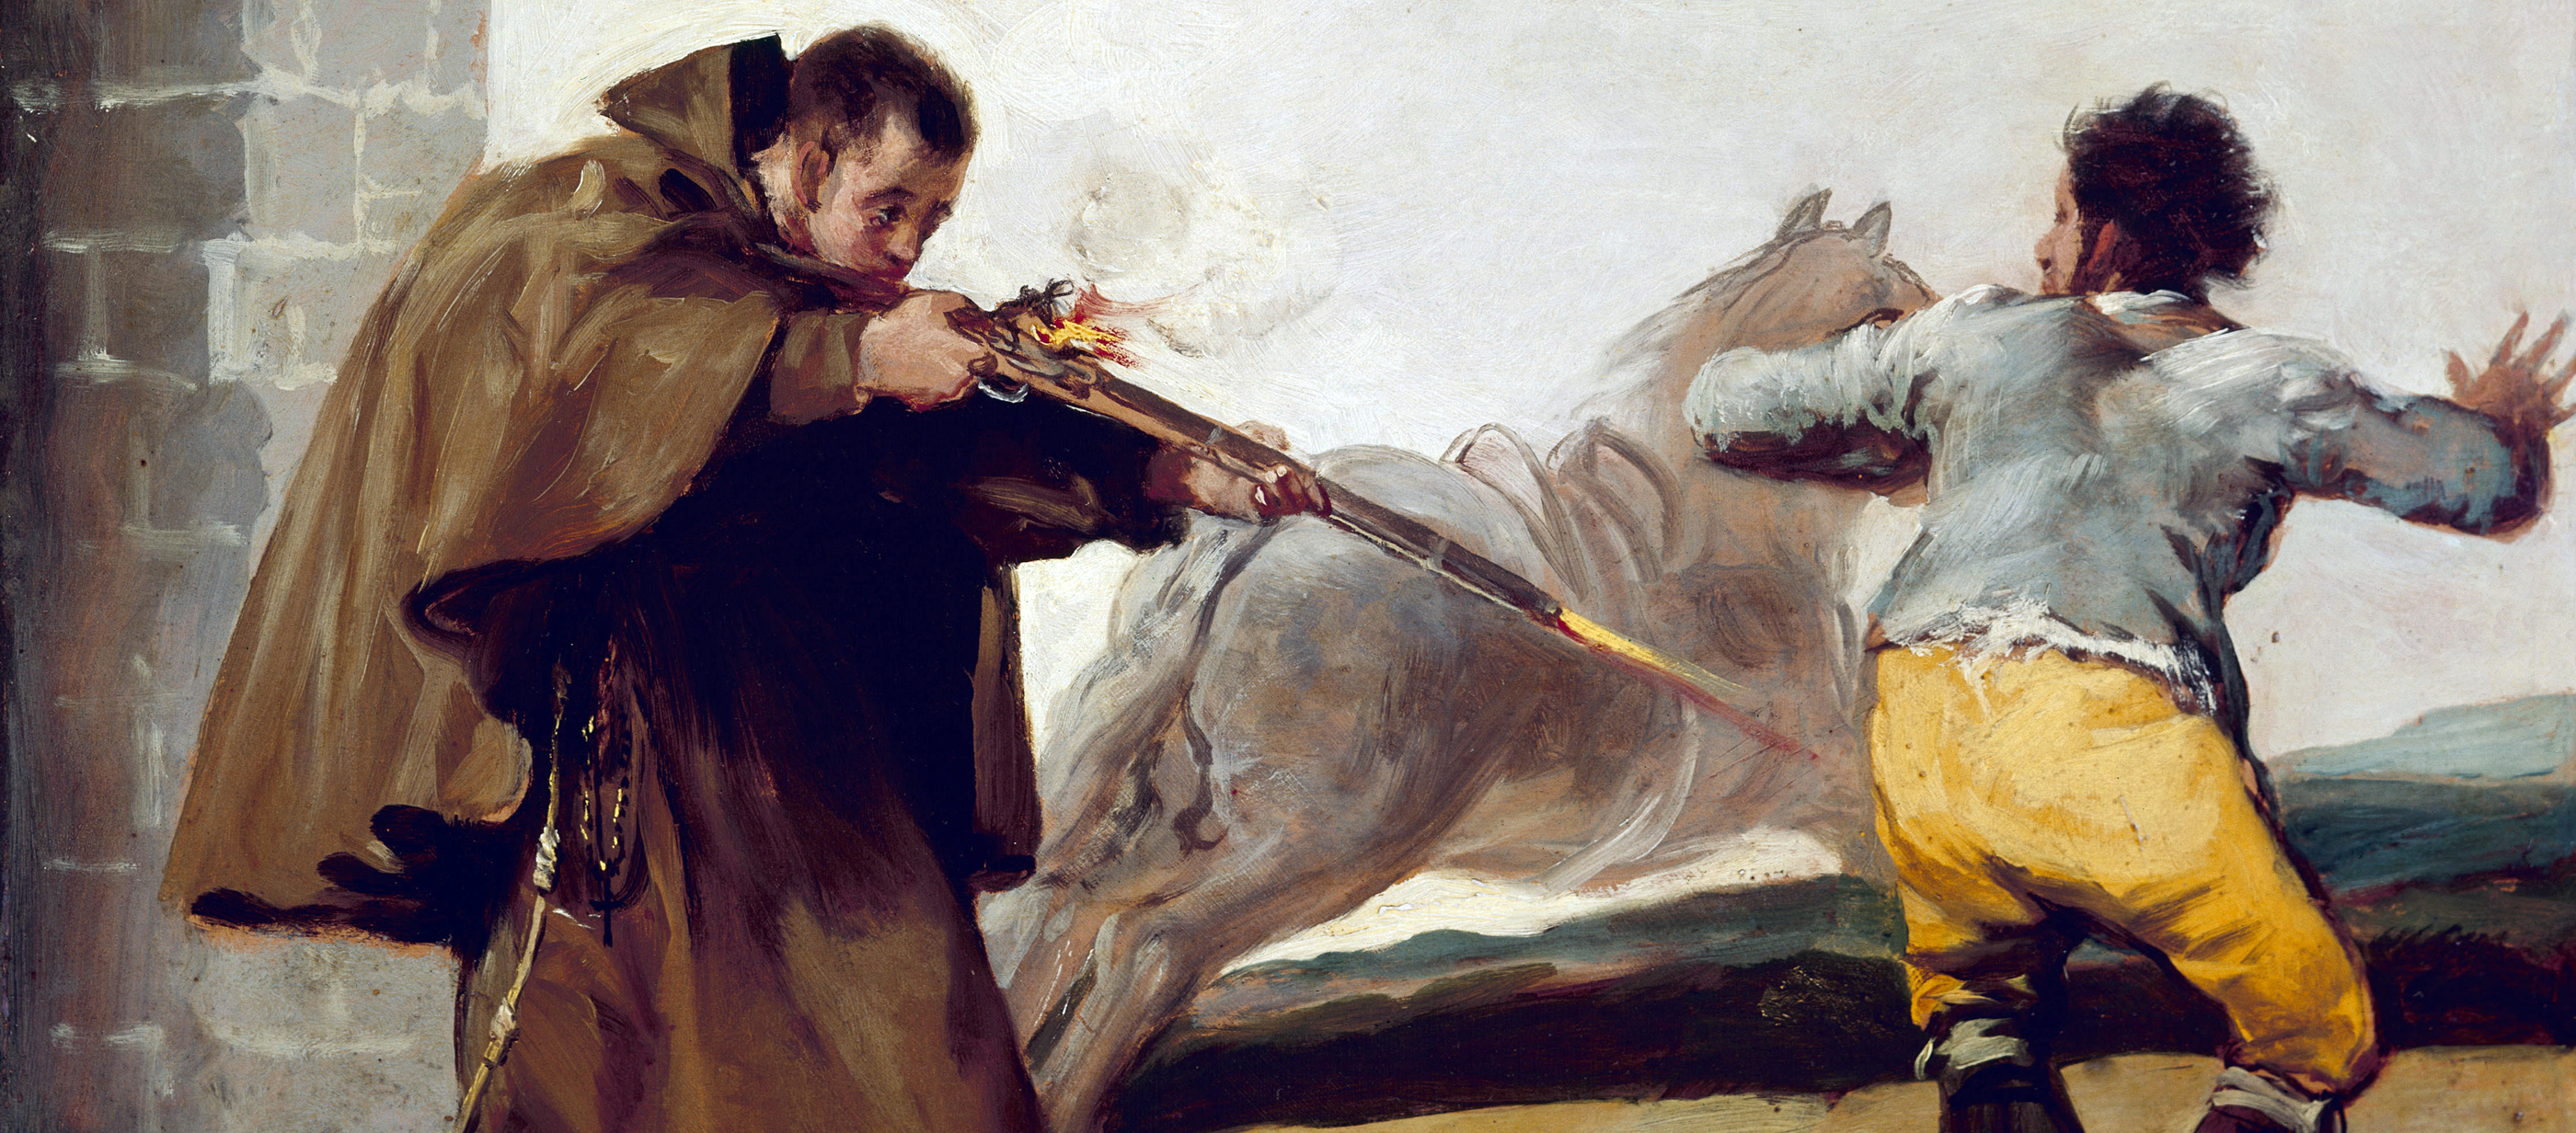 Friar Pedro Shoots El Maragato as His Horse Runs Off, by Francisco José de Goya y Lucientes, c. 1806.